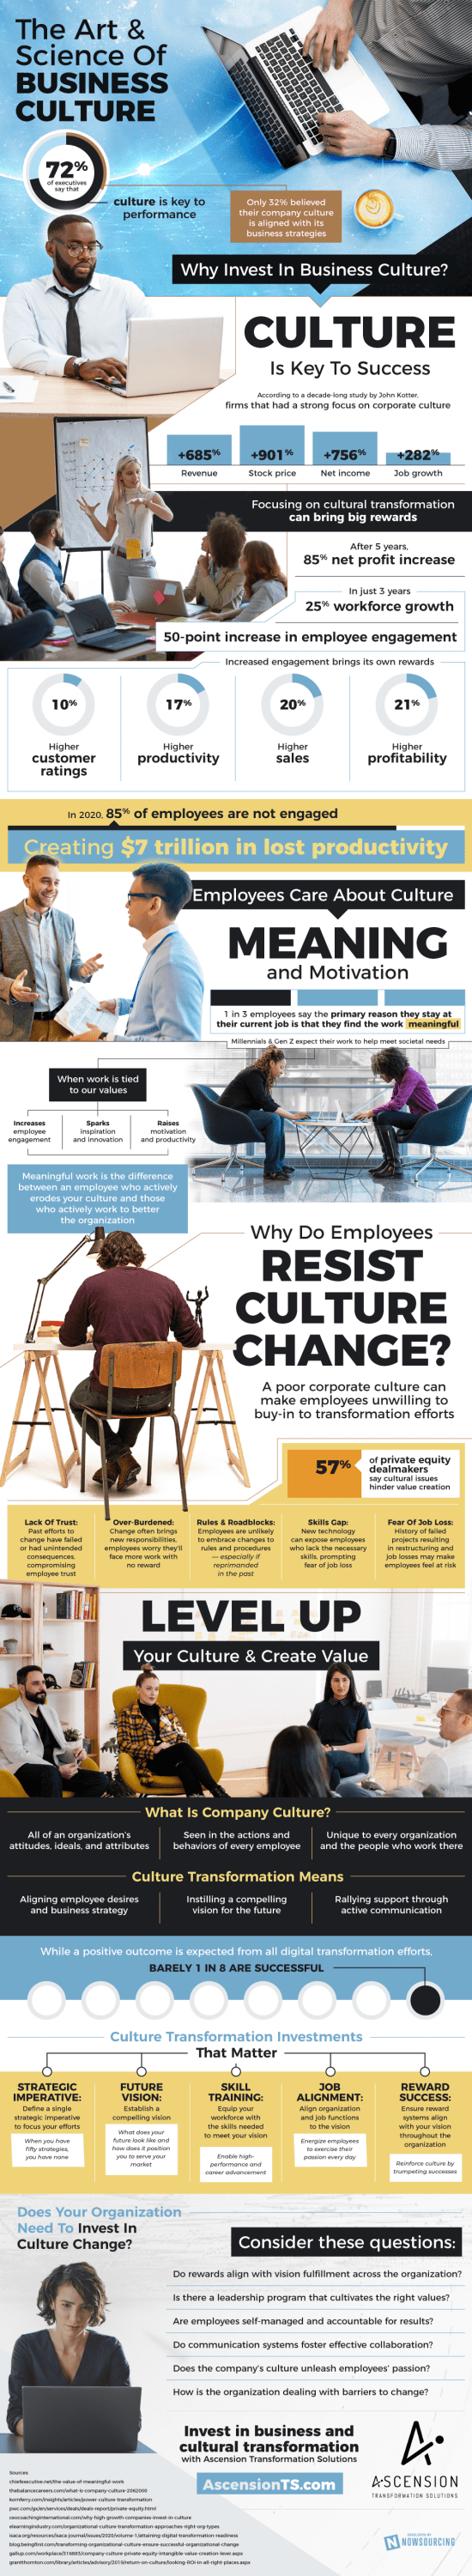 Why Invest in Business Culture Transformation?